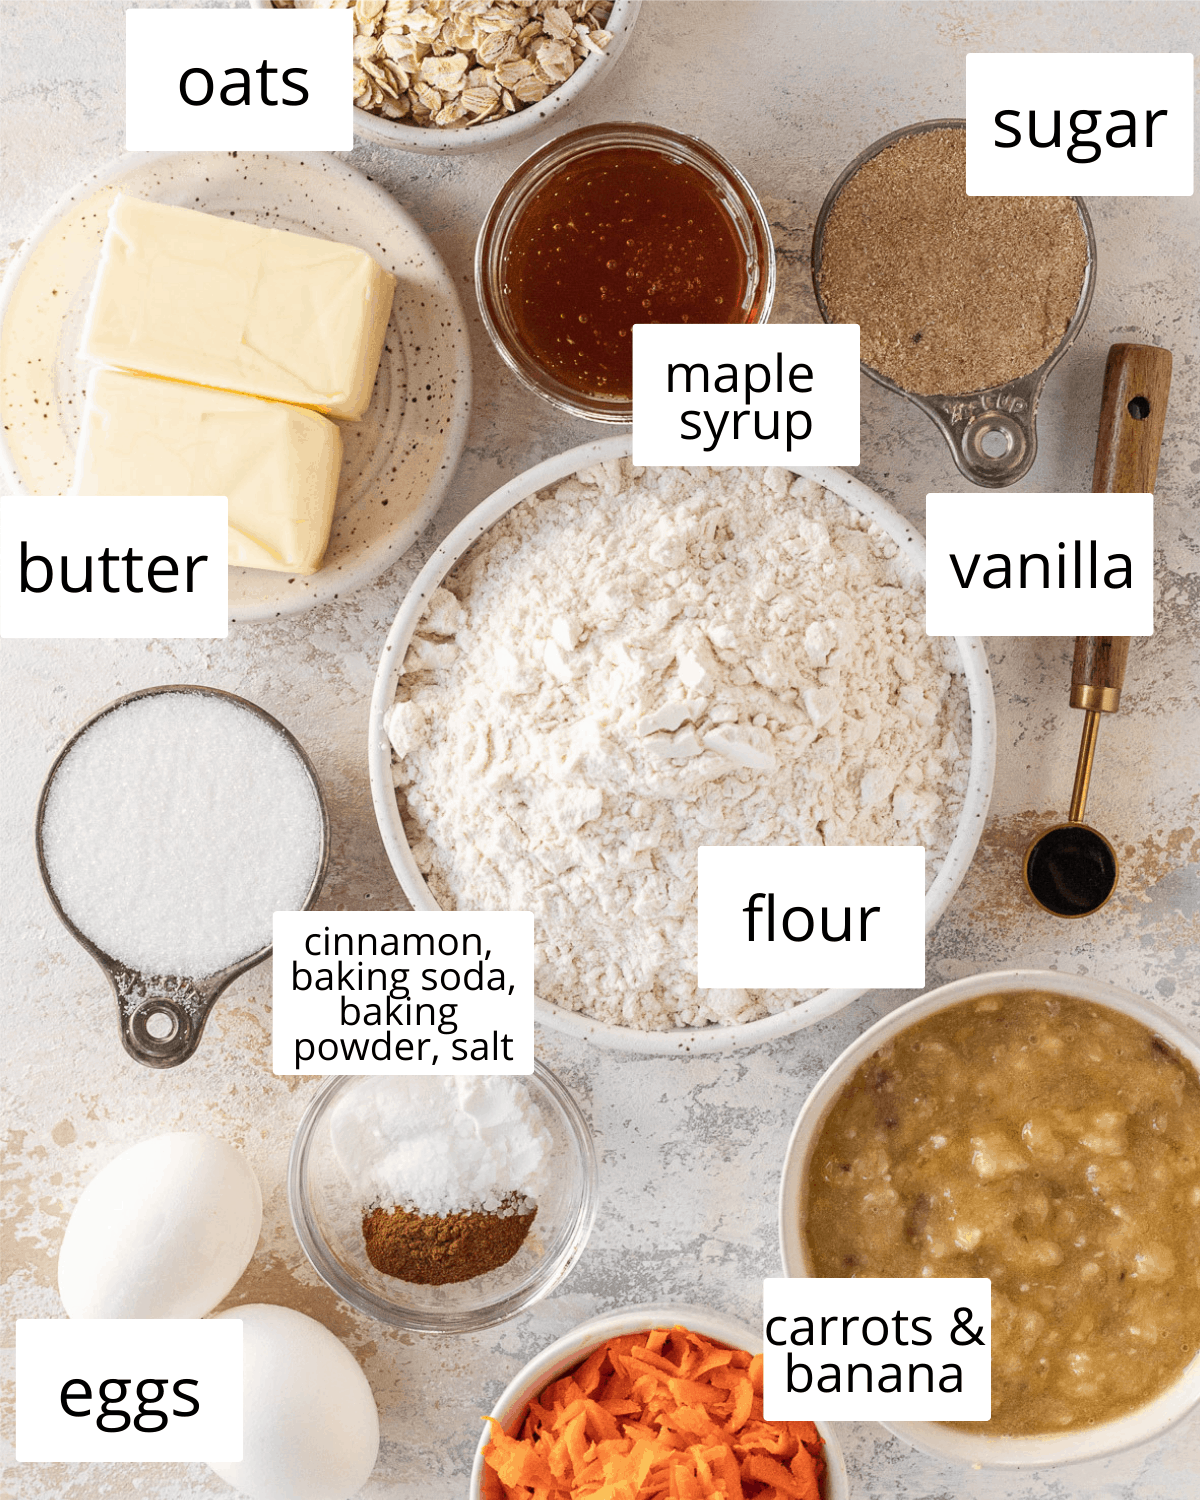 ingredients needed to make banana carrot muffins